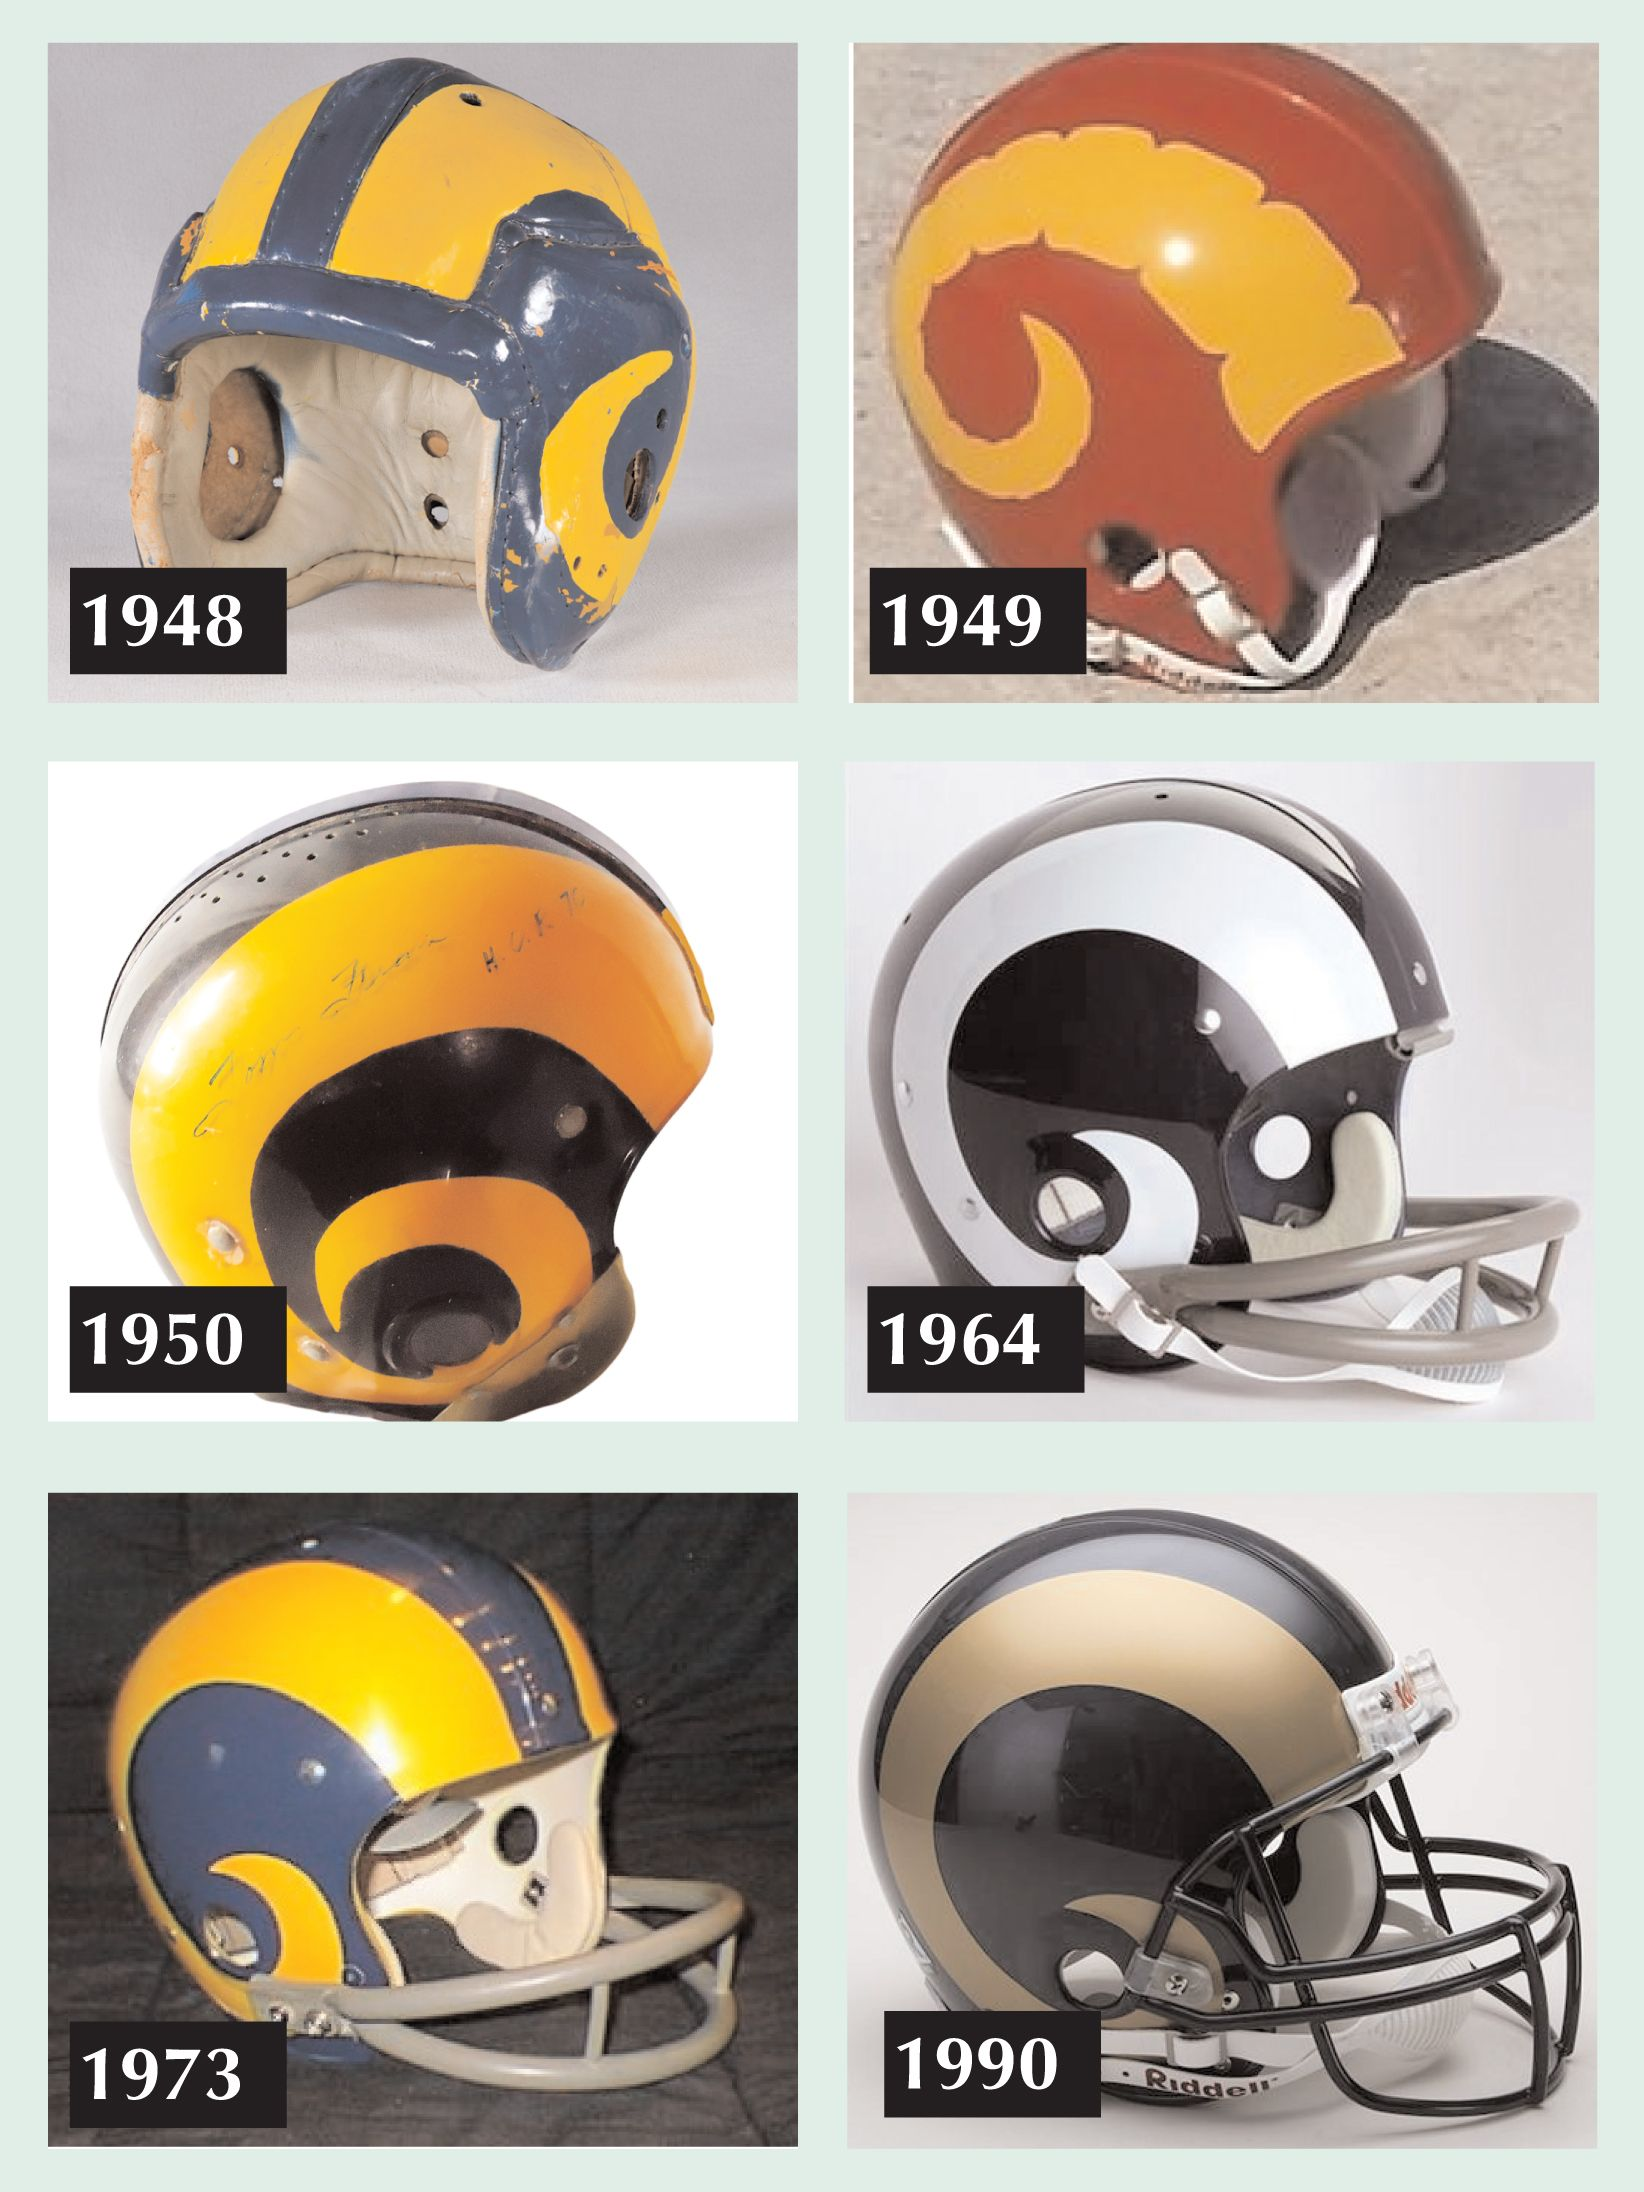 fullback fred gehrke of the cleveland rams designed the first pro helmet with a logo or design in 1948 rams football football helmets nfl football helmets rams football football helmets